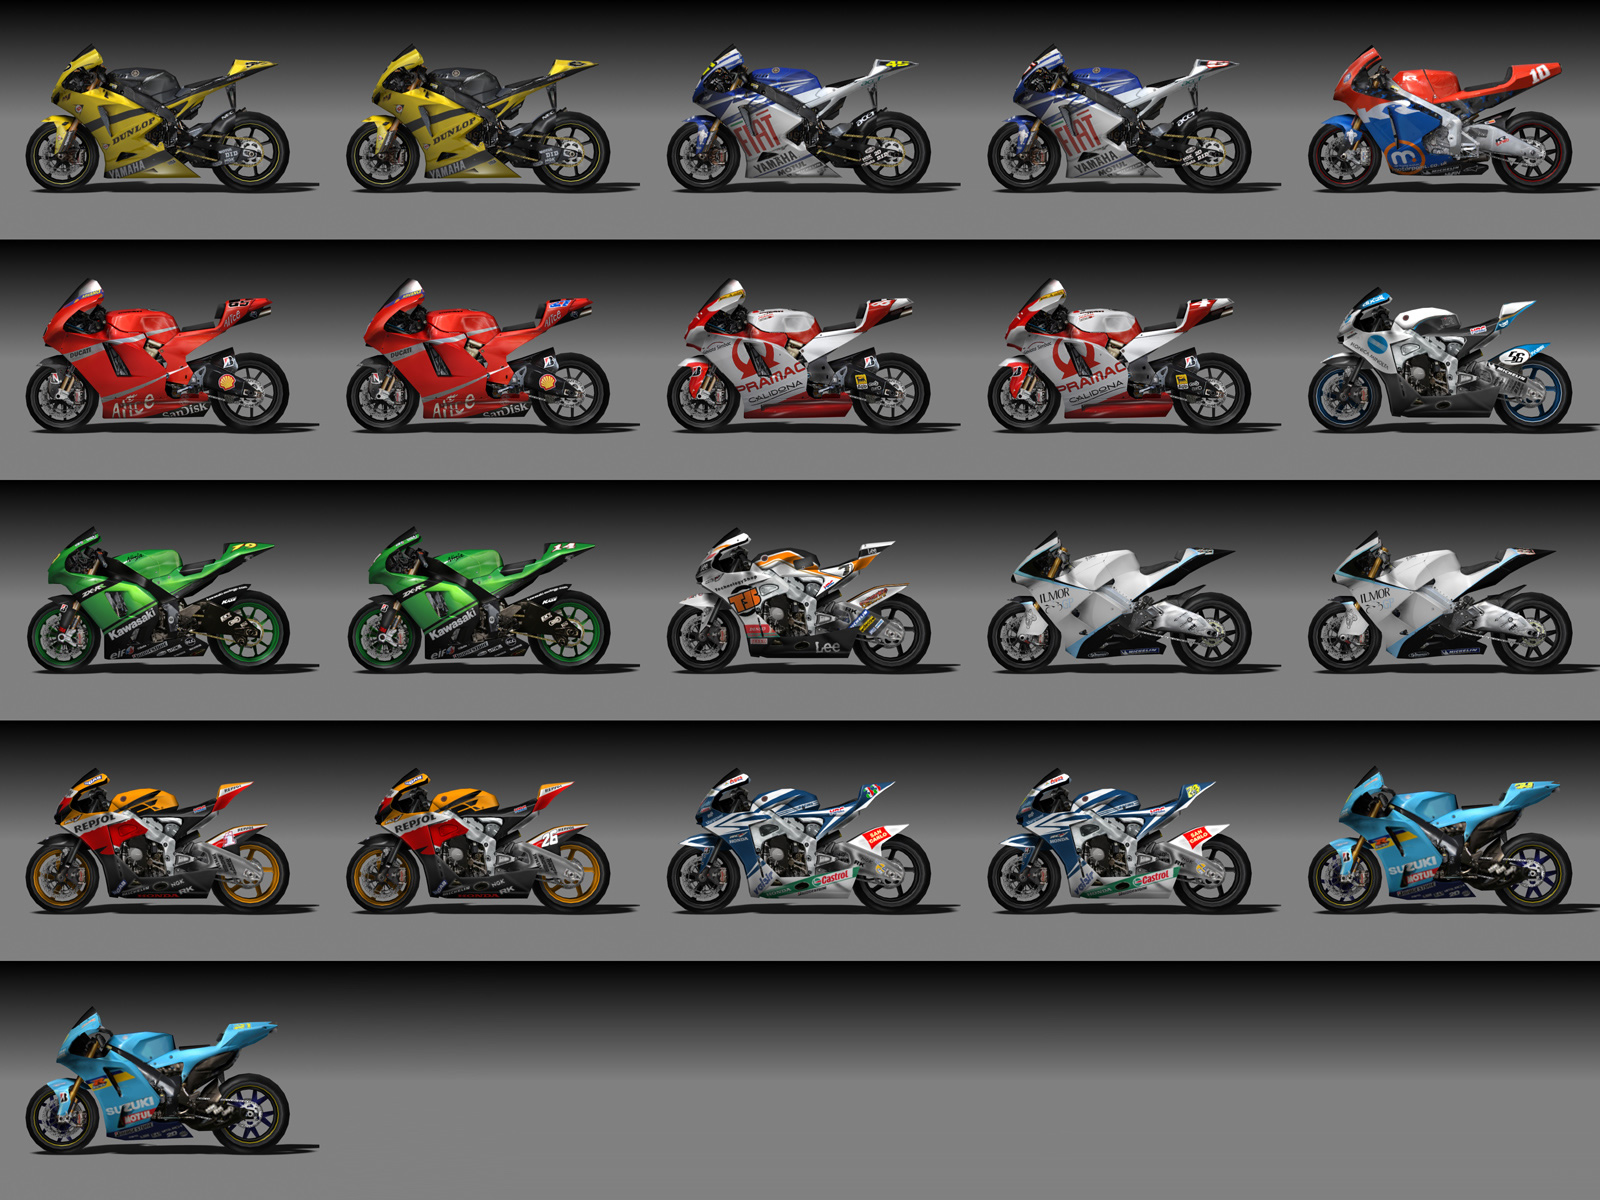 Motorcycle In MotoGP Wallpaper 1600 x 1200 Wallpaper with 1600x1200 1600x1200